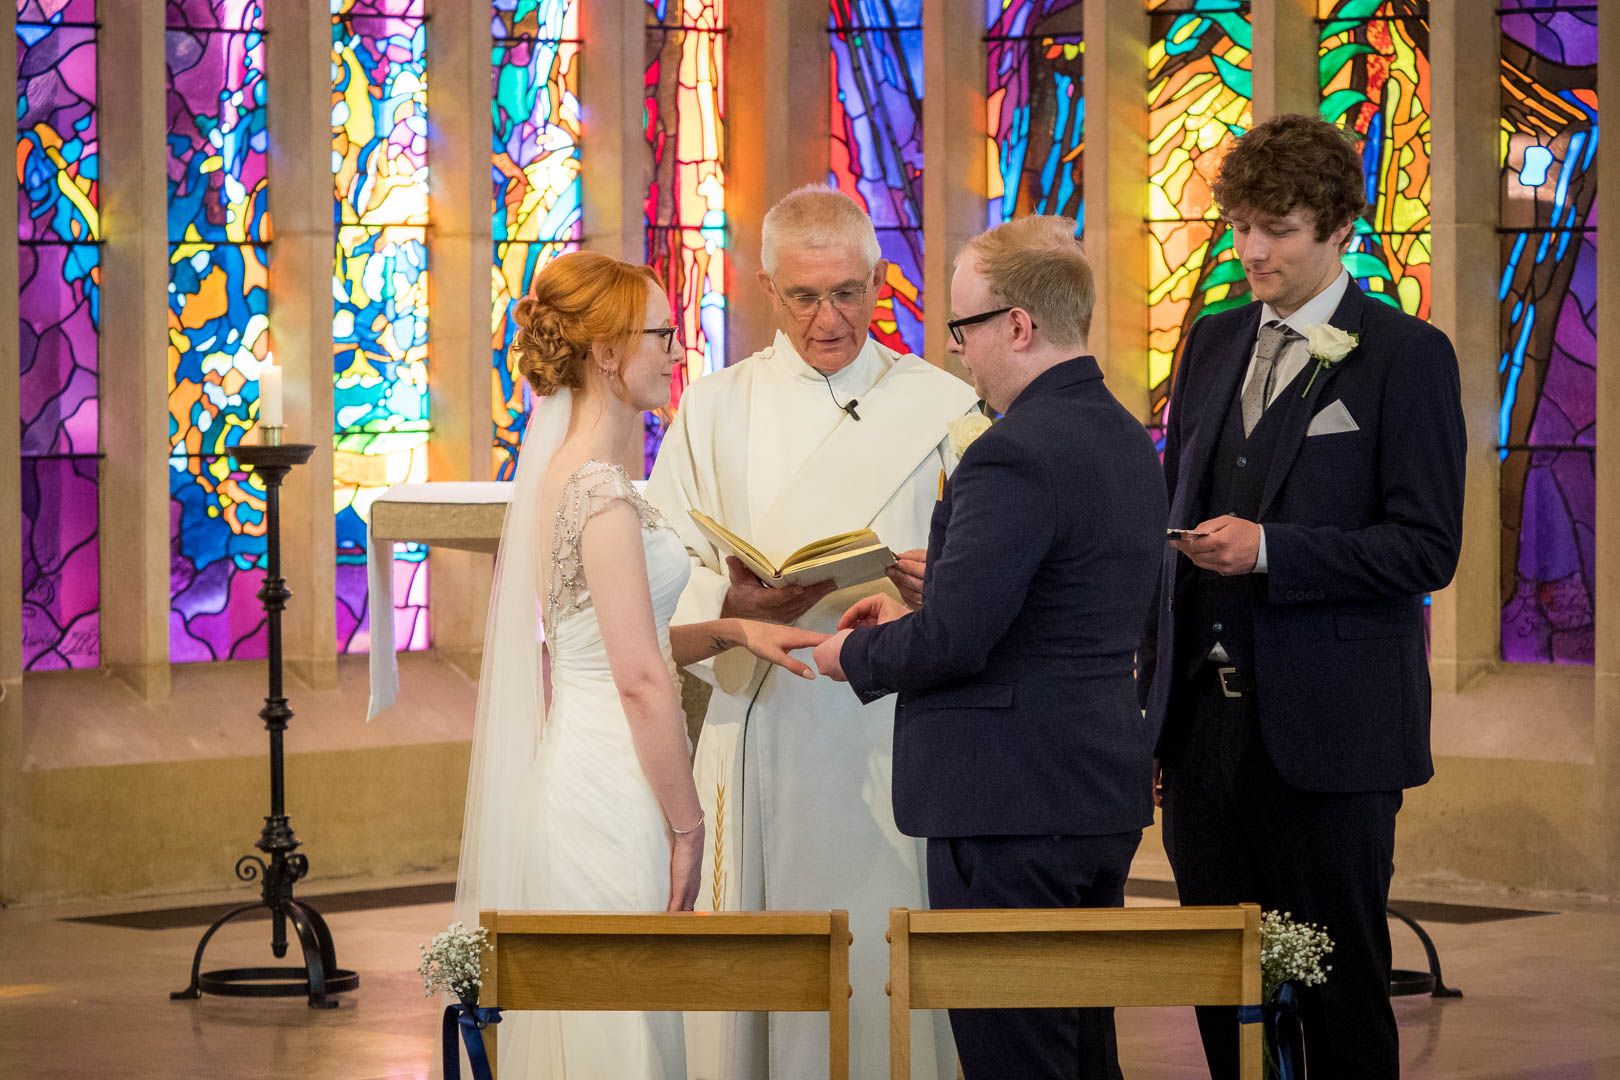 Bride receives her ring from her groom during their Chandler's Ford Roman Catholic church wedding